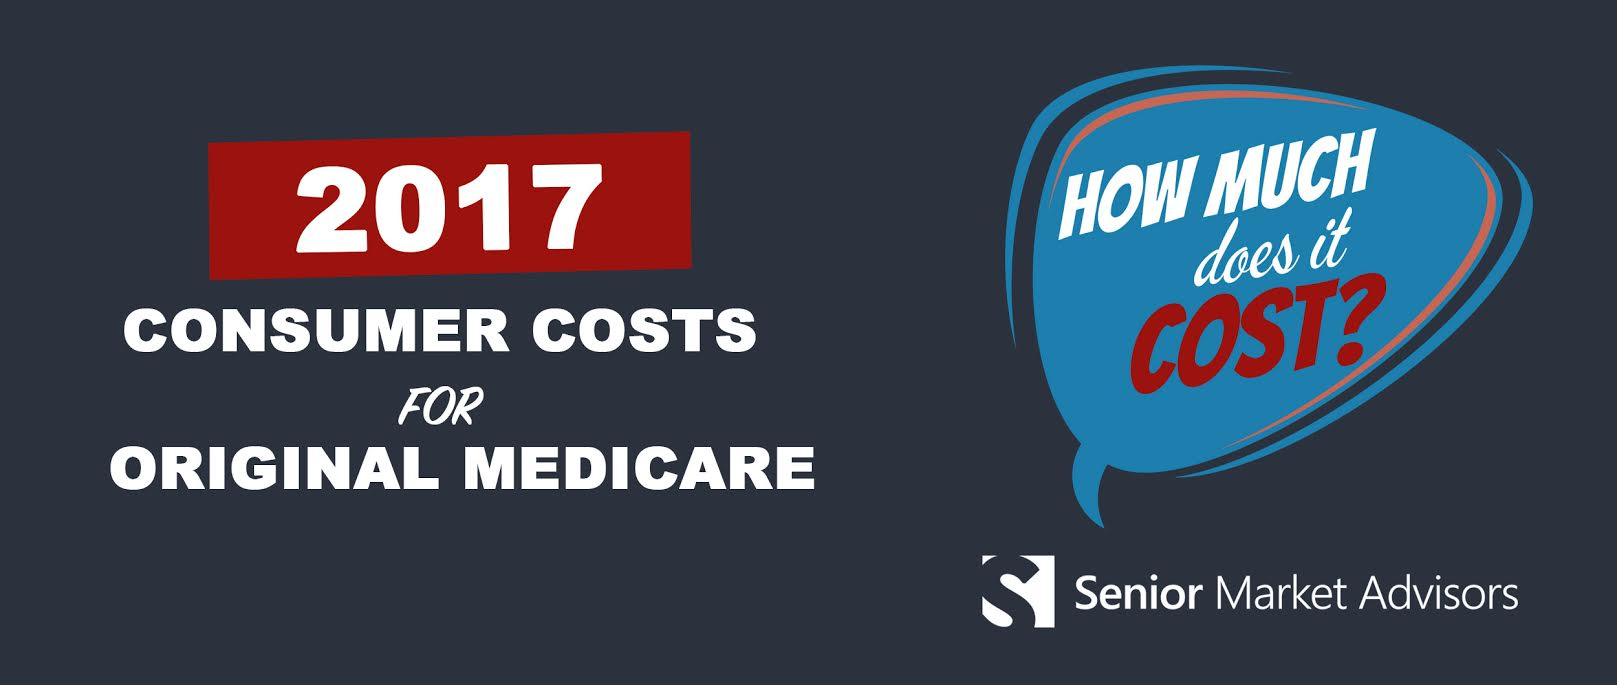 Consumer Costs For Original Medicare In 2017 | Senior Market Advisors